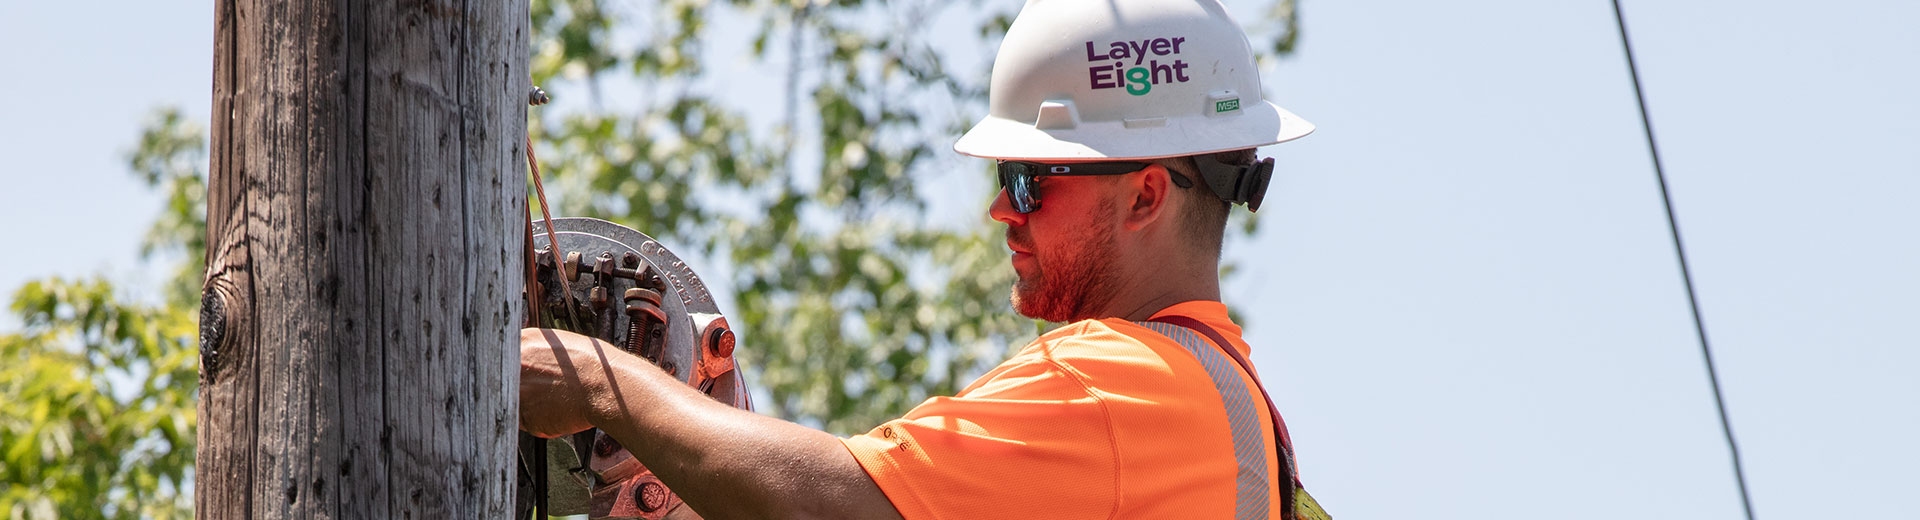 Construction support lineman working from a cherry picker truck